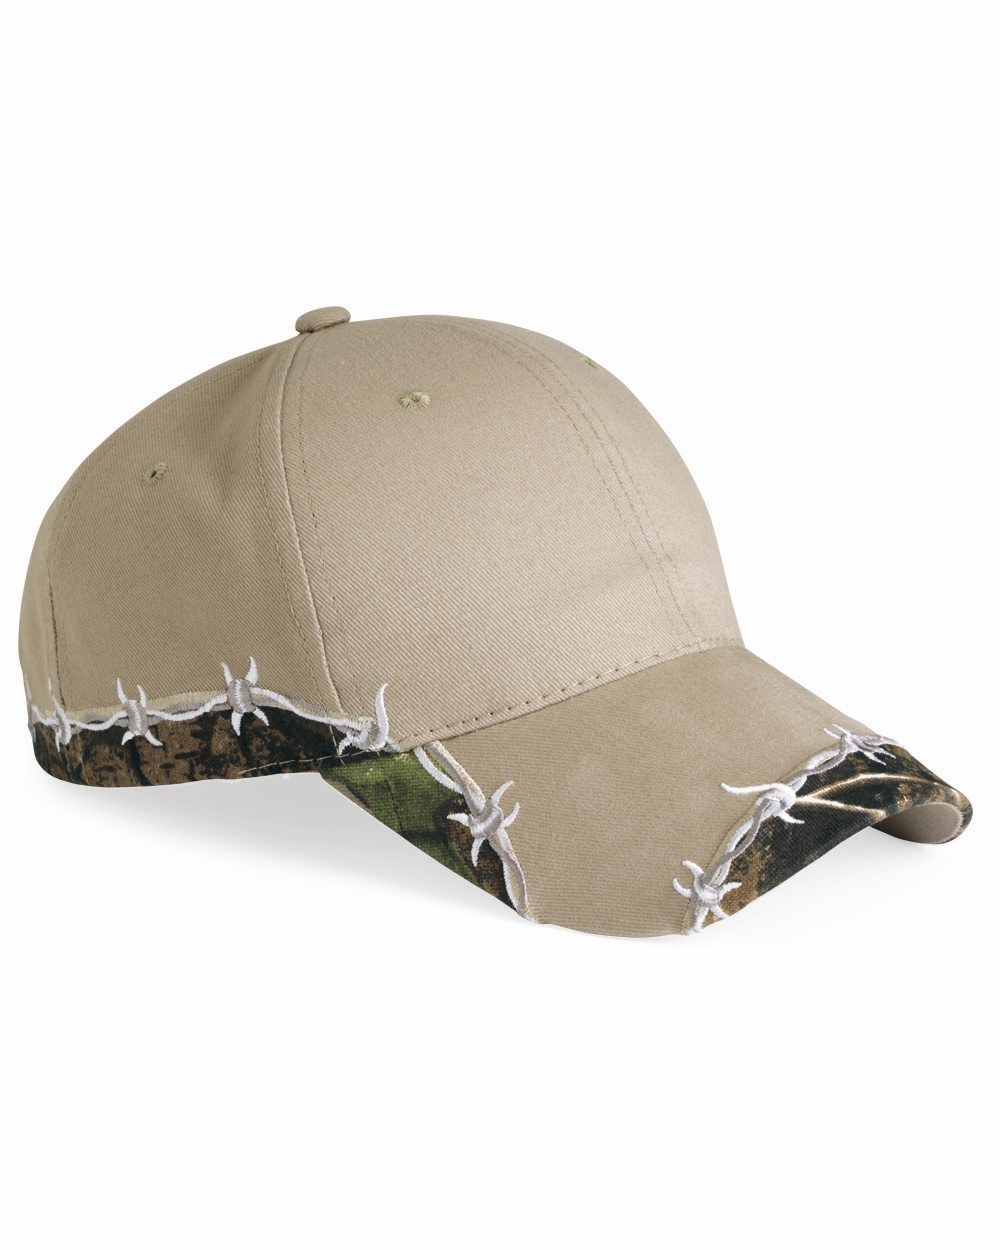 Outdoor Cap BRB605-Barbed Wire Camo Cap